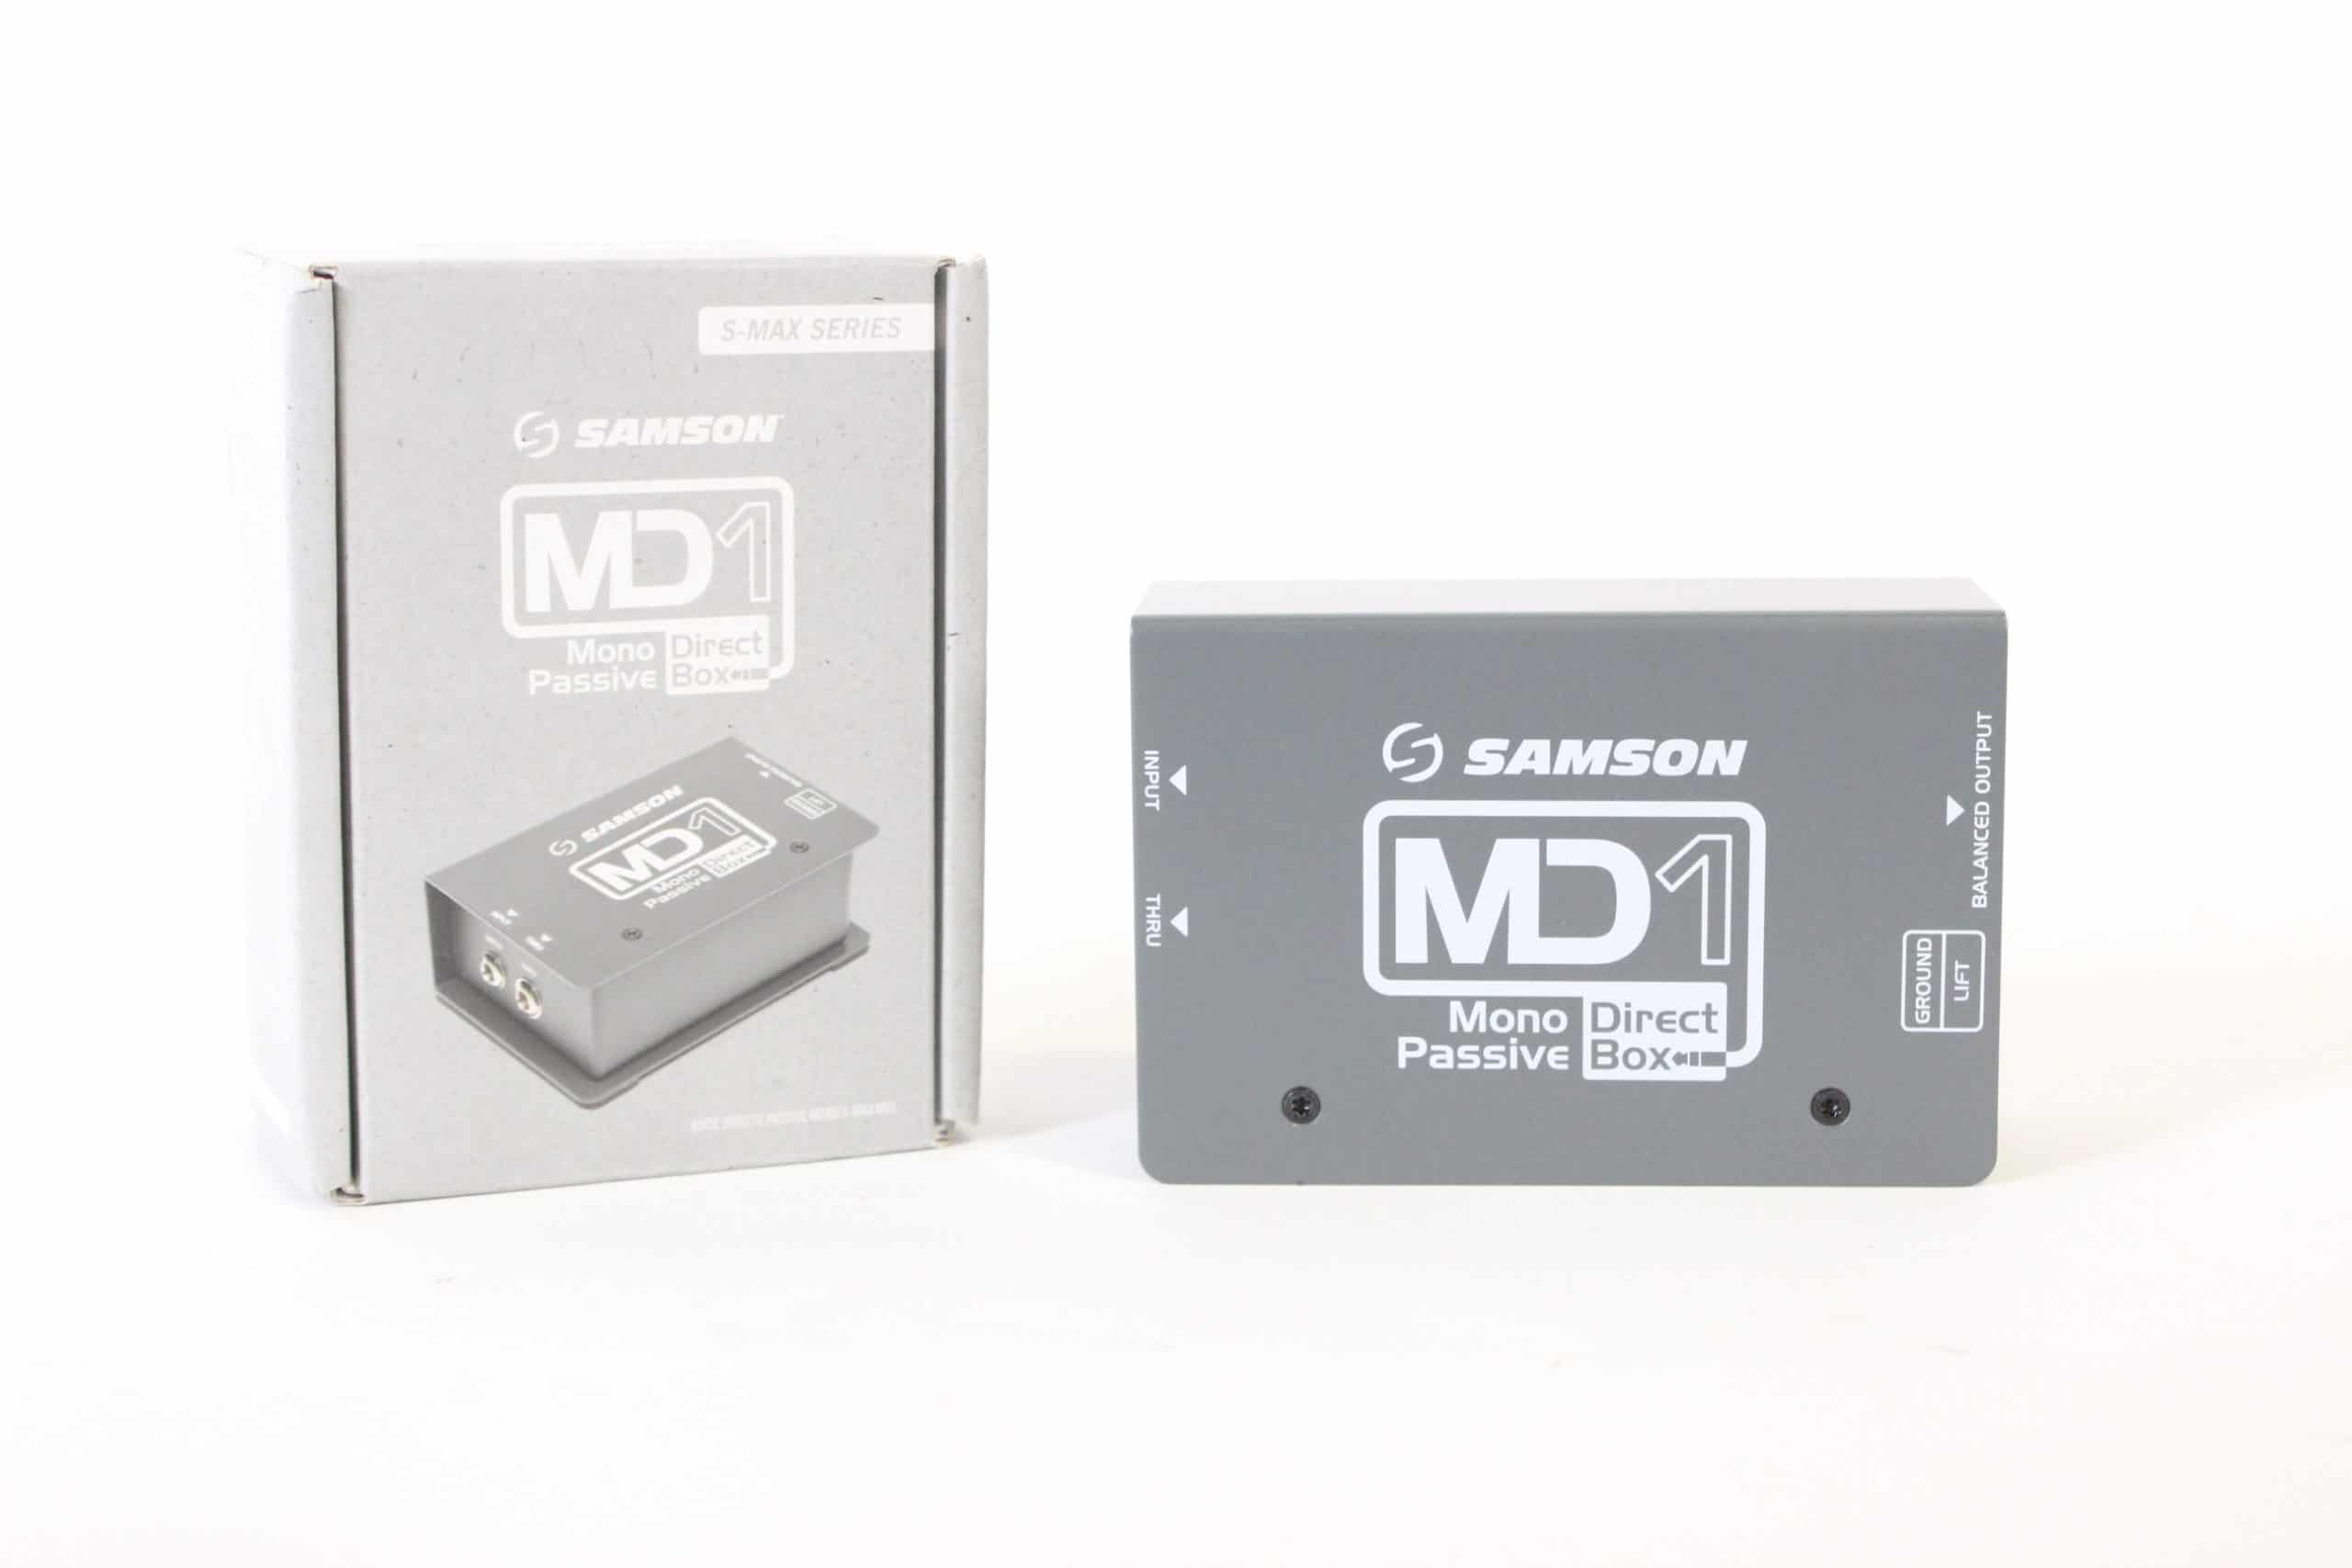 samson-md1-mono-direct-passive-box MAIN